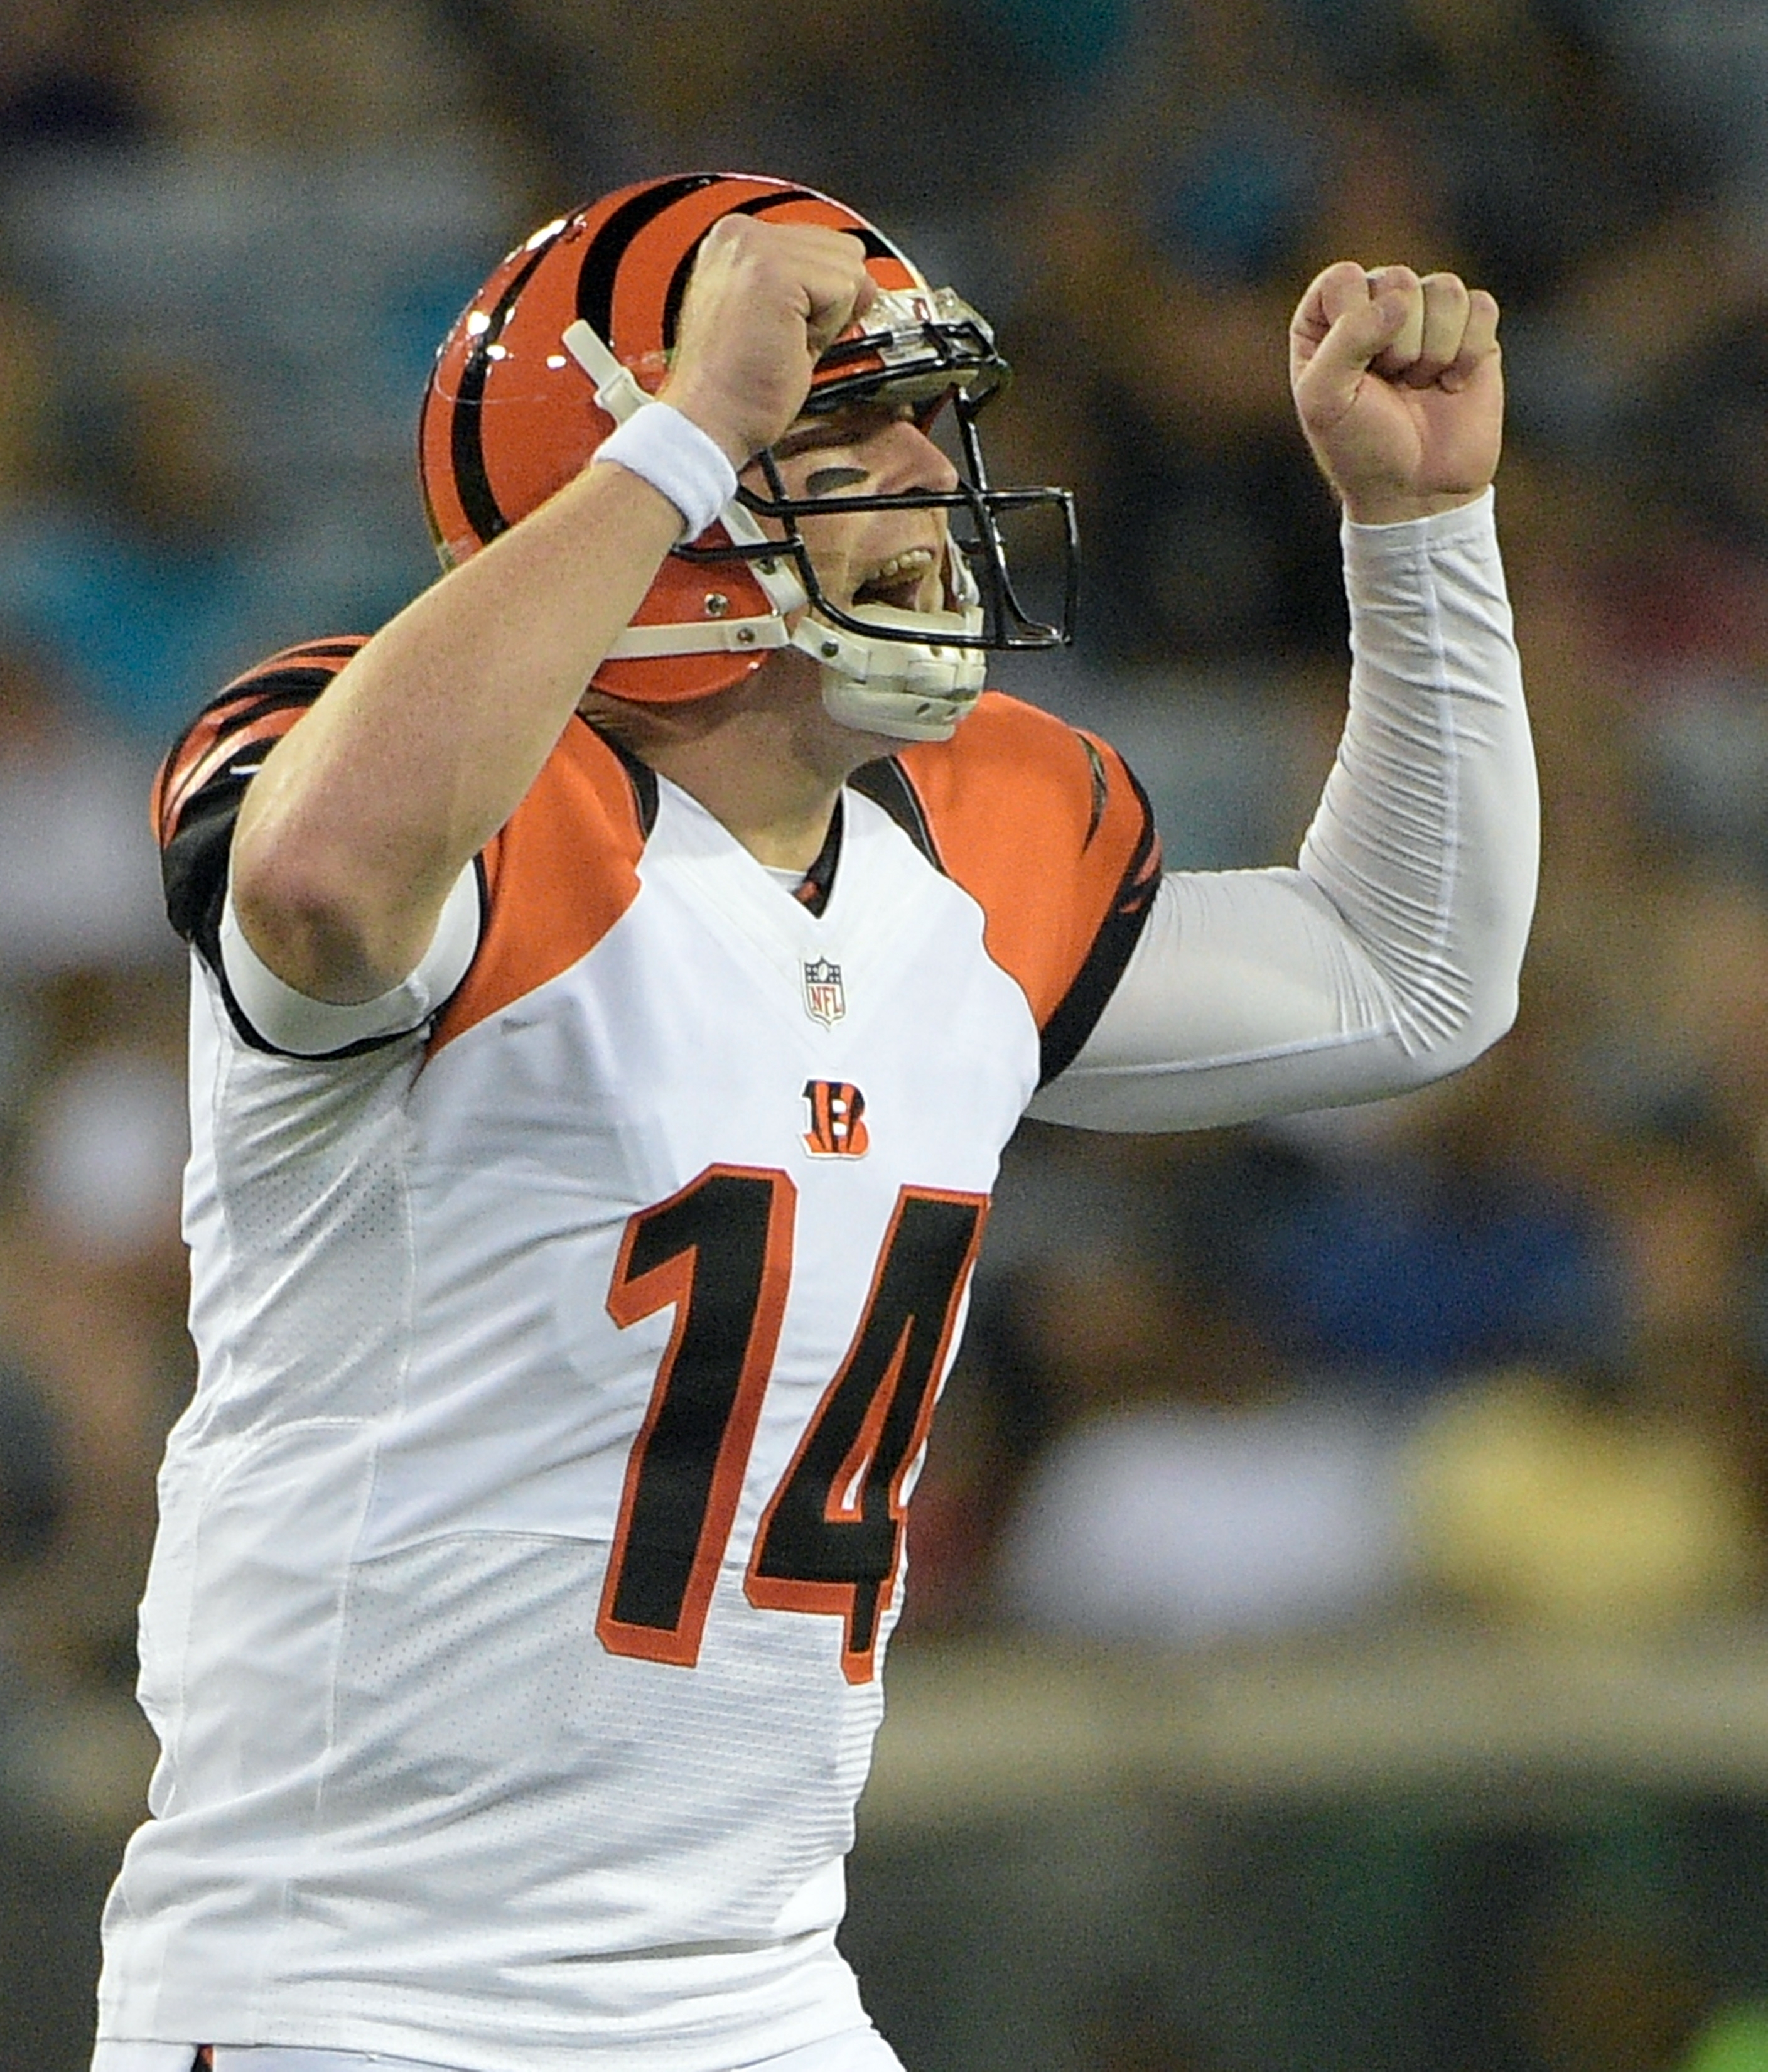 FILE - In this Aug. 28, 2016, file photo, Cincinnati Bengals quarterback Andy Dalton calls out to teammates before a play against the Jacksonville Jaguars during the first half of an NFL preseason football game in Jacksonville, Fla. The Bengals quarterbac